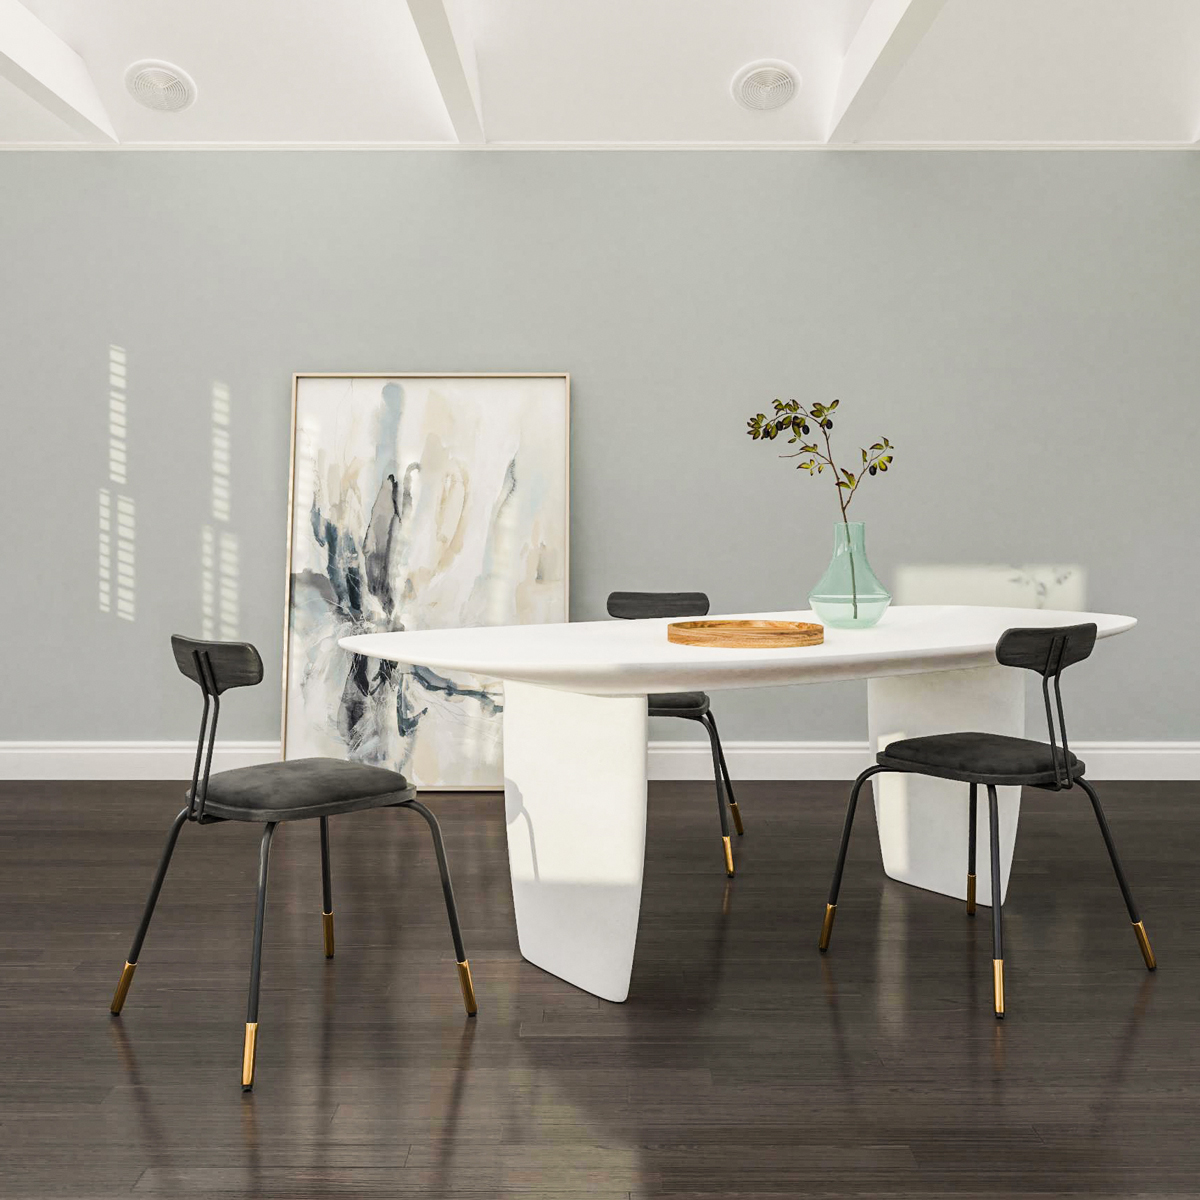 modern-table-in-white-polished-concrete